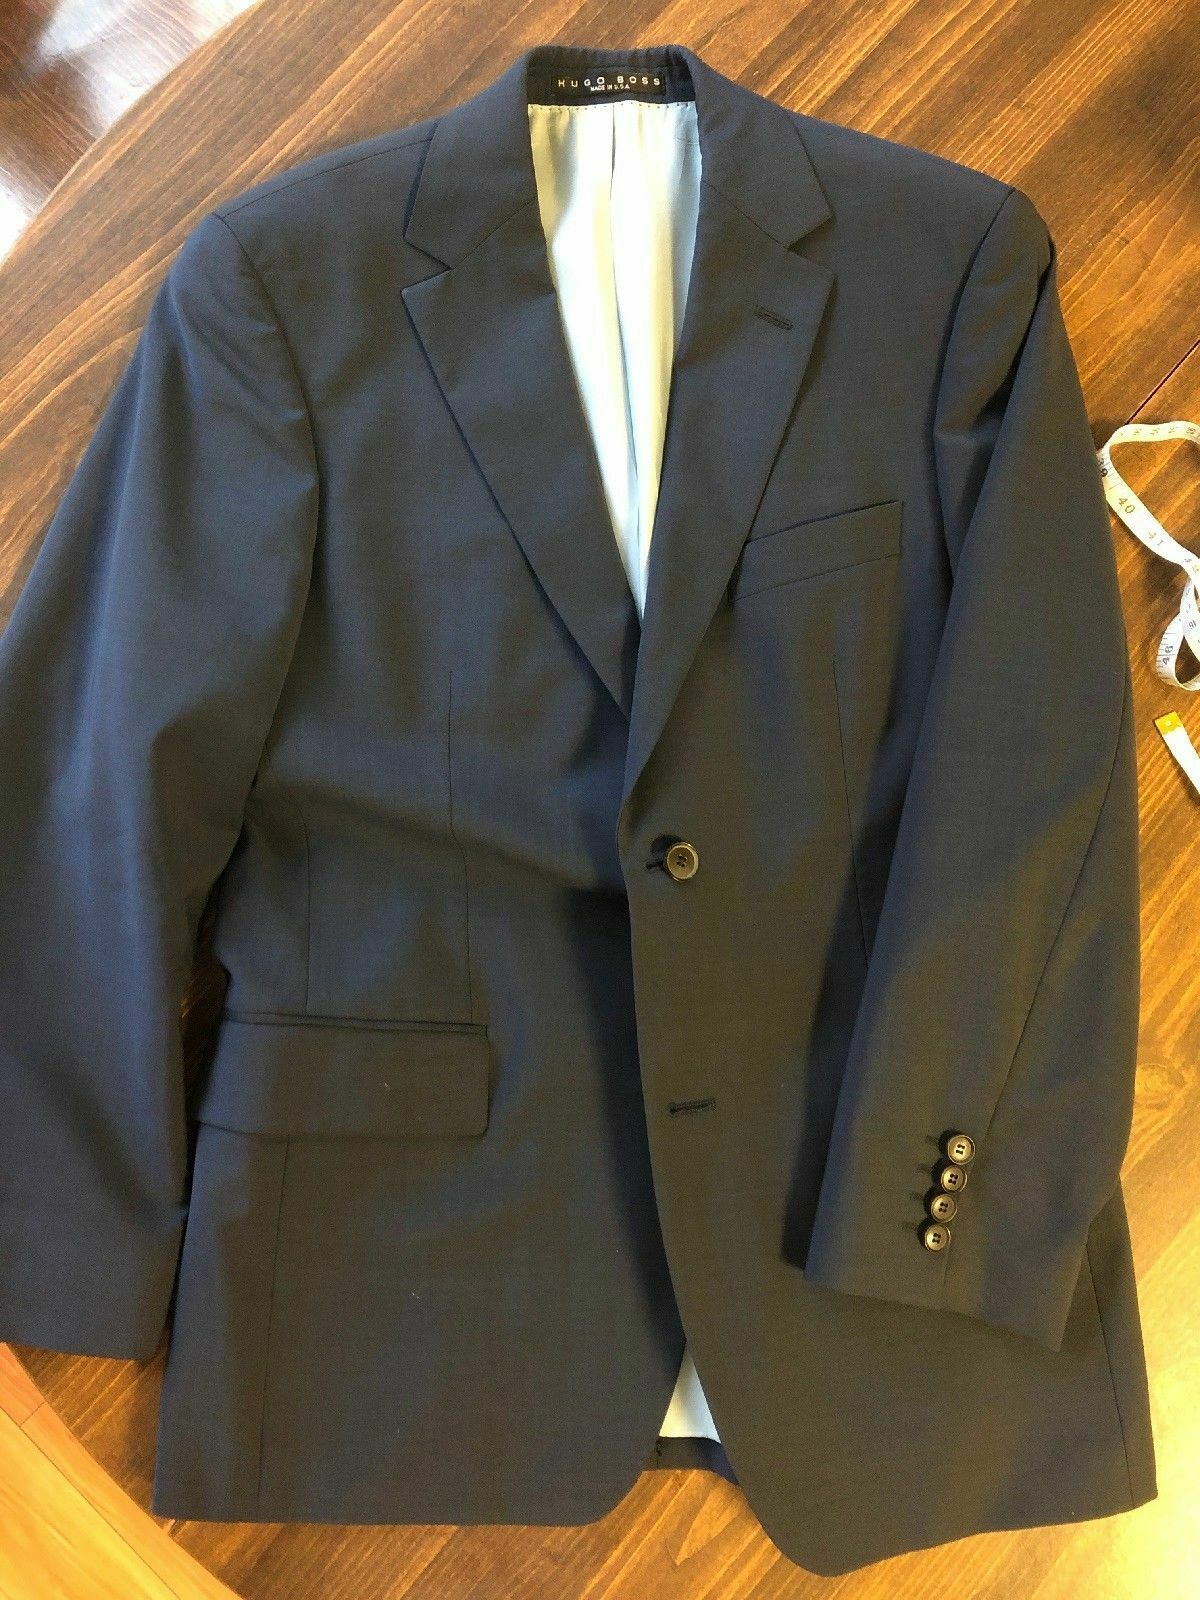 6a3cd3d7e Hugo Boss 100% Wool Suit - or 38s (Pasolini Movie fit) 36s bluee ...